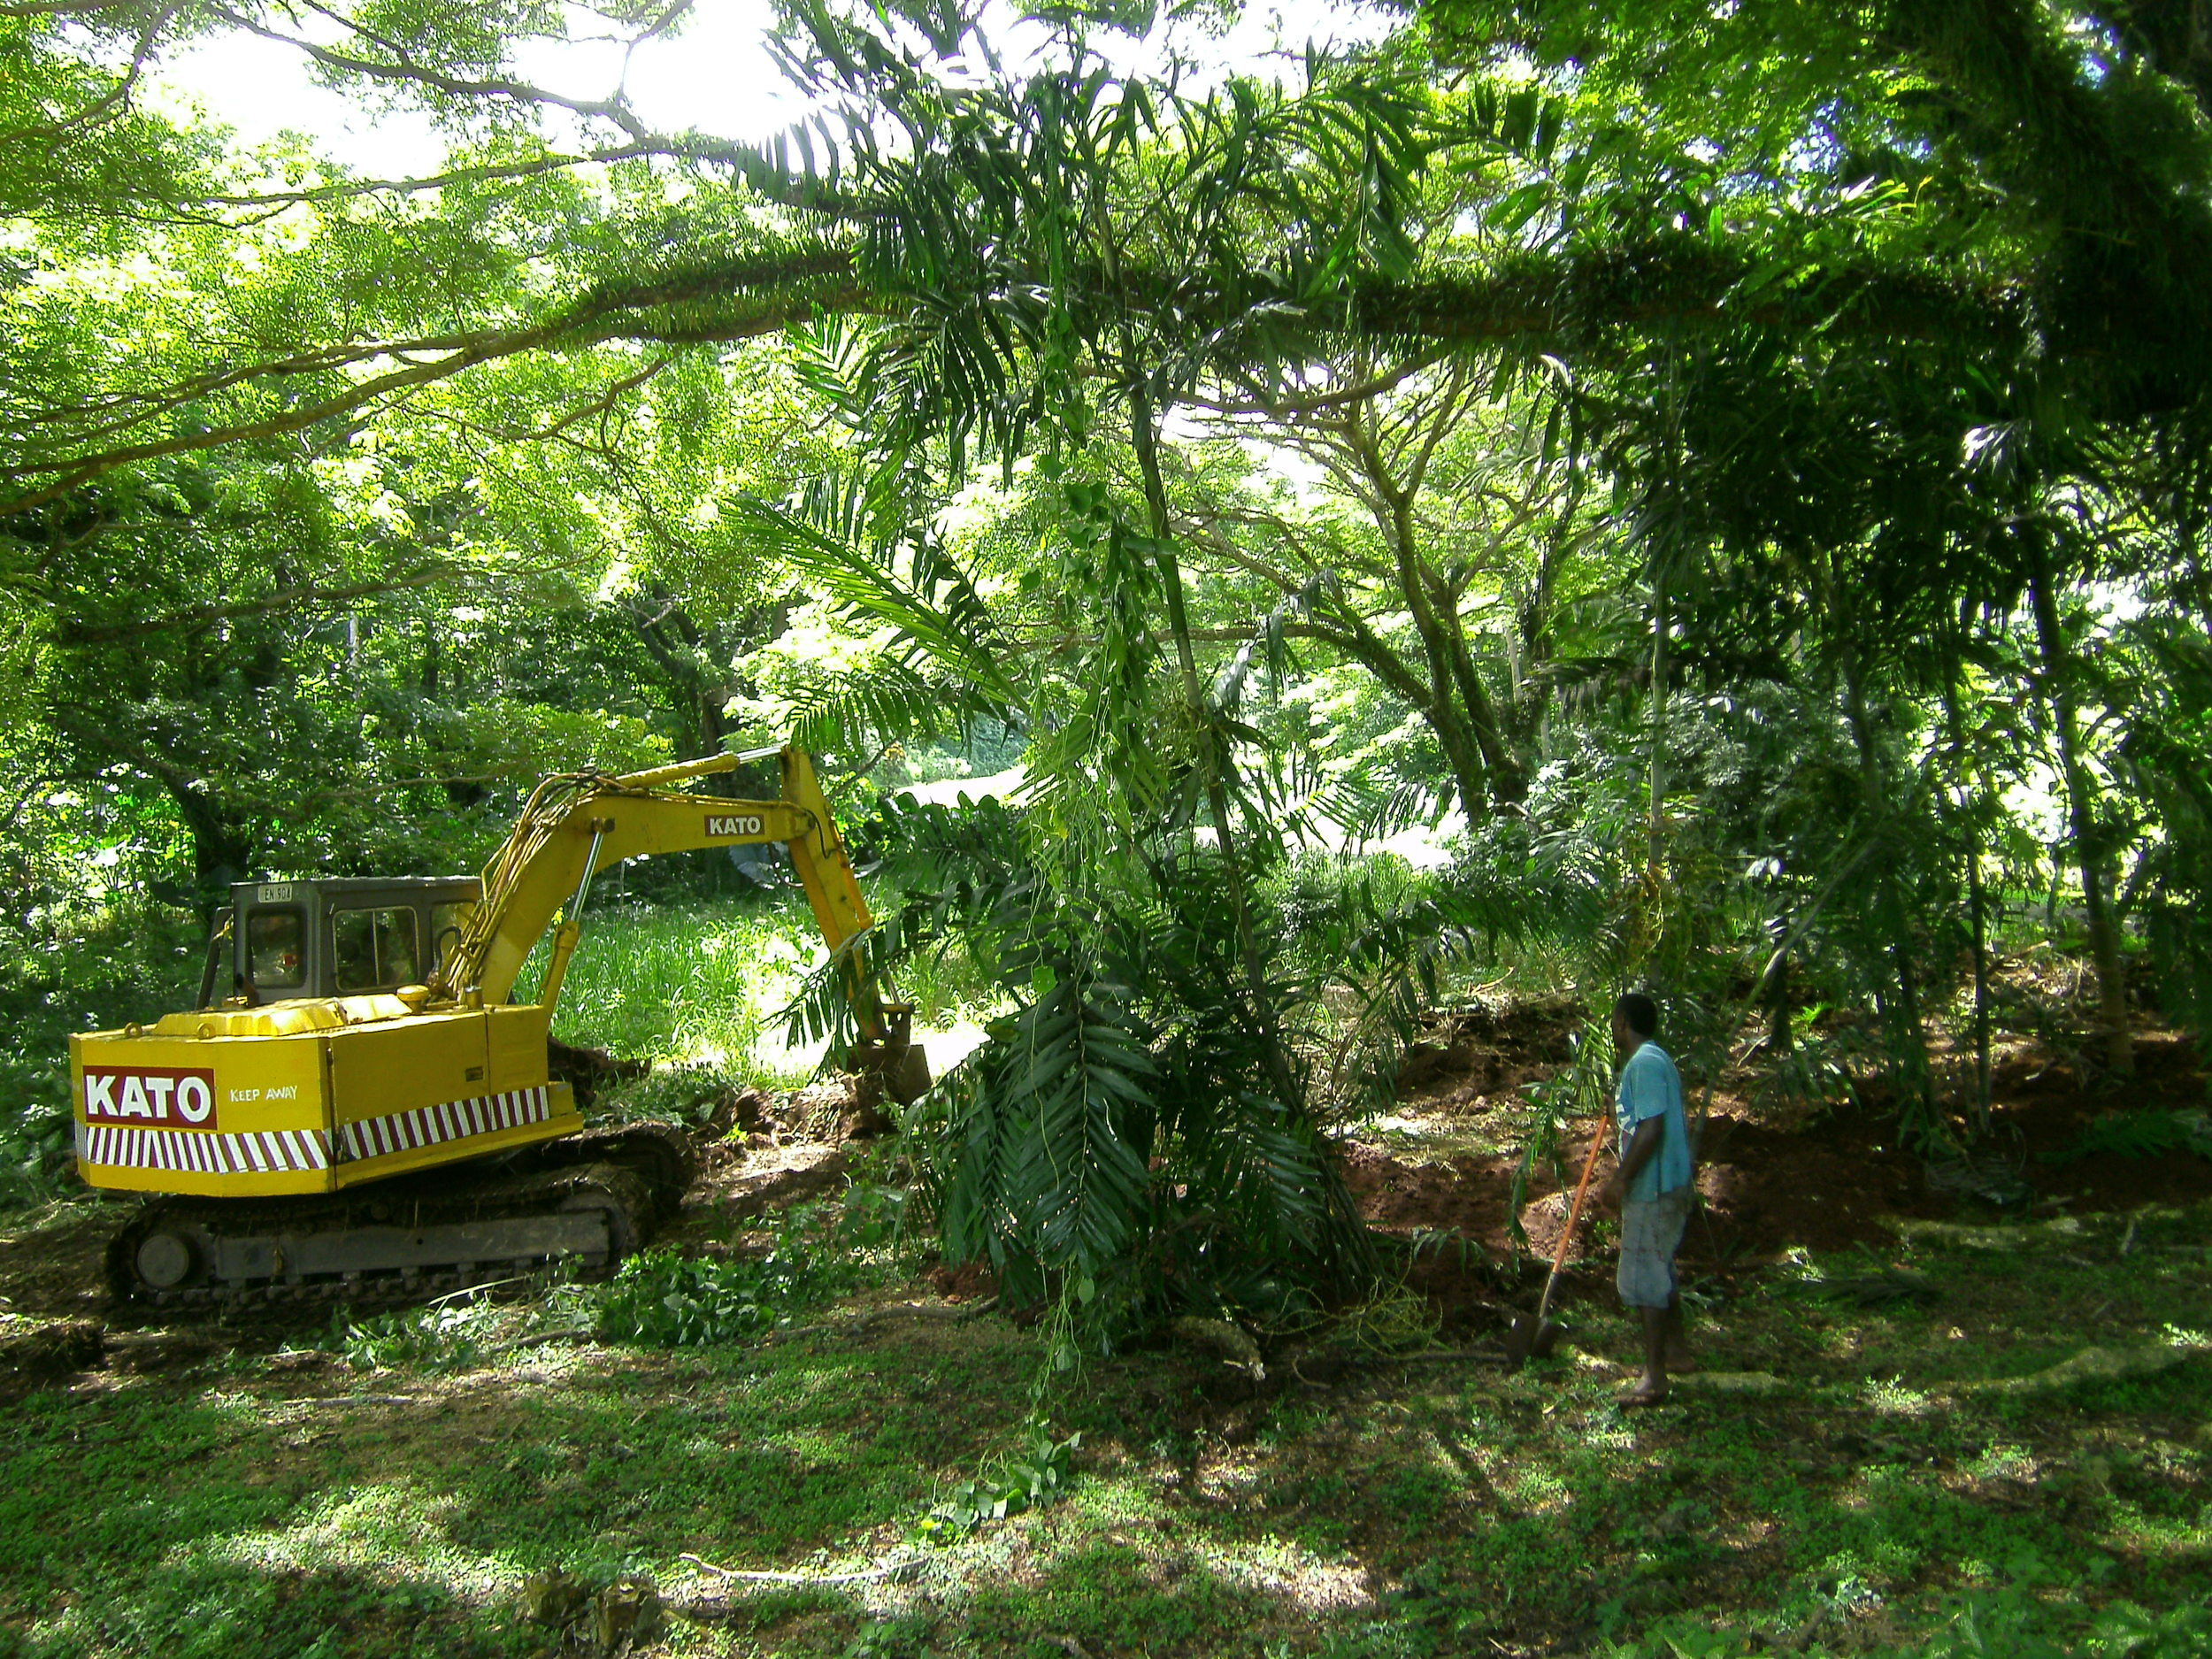 The excavator hard at work preparing the site for the moved palms.